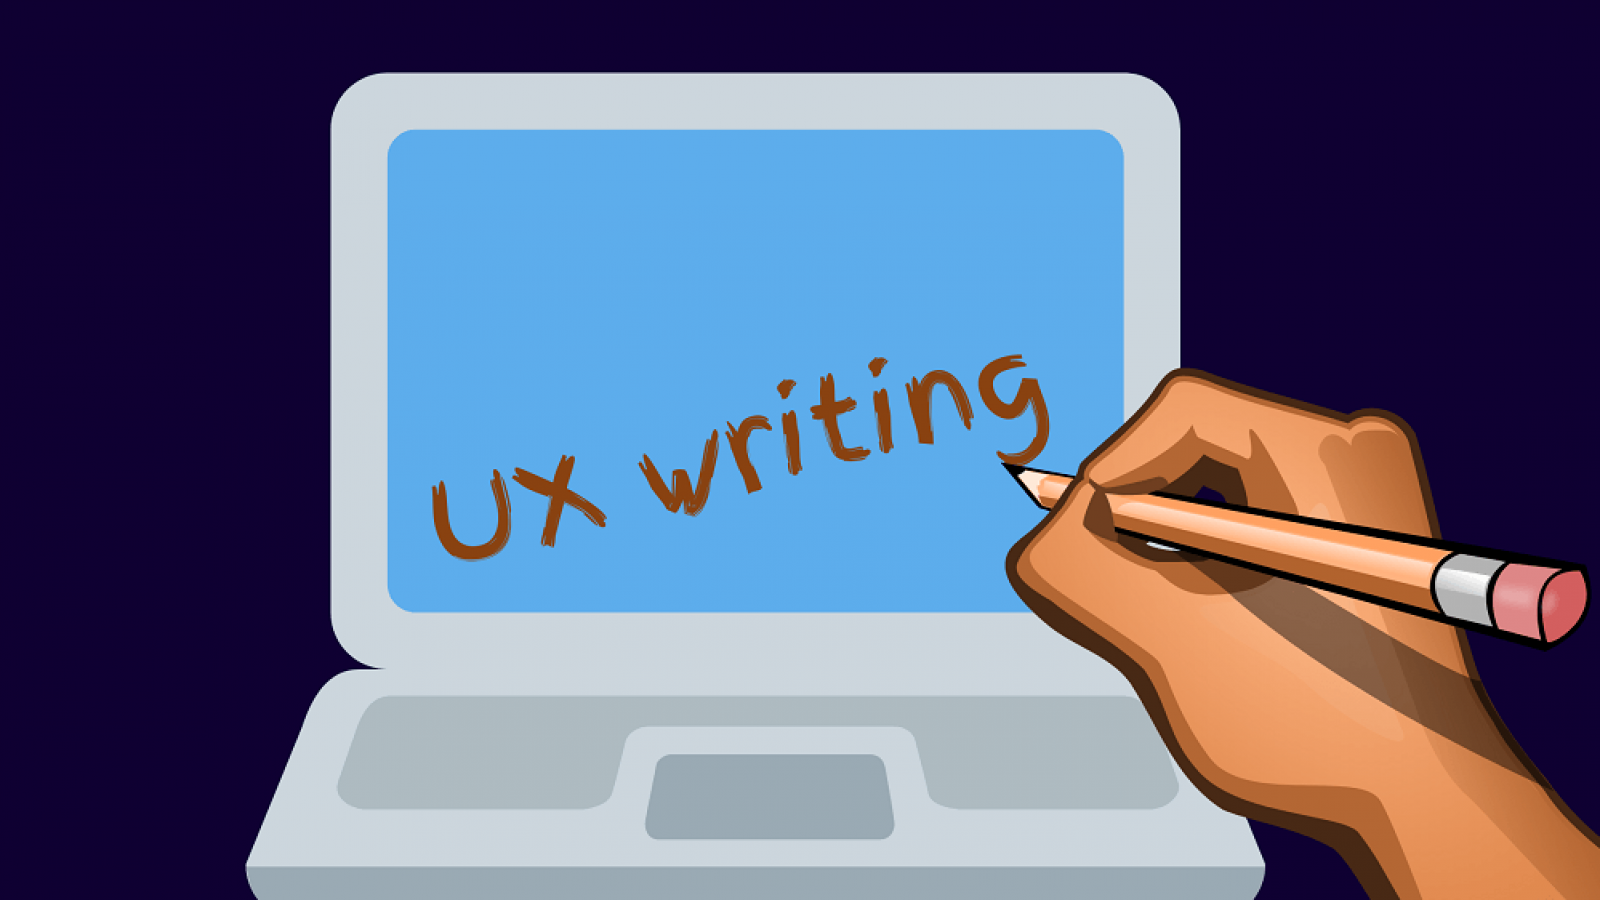 UX writing co to jest